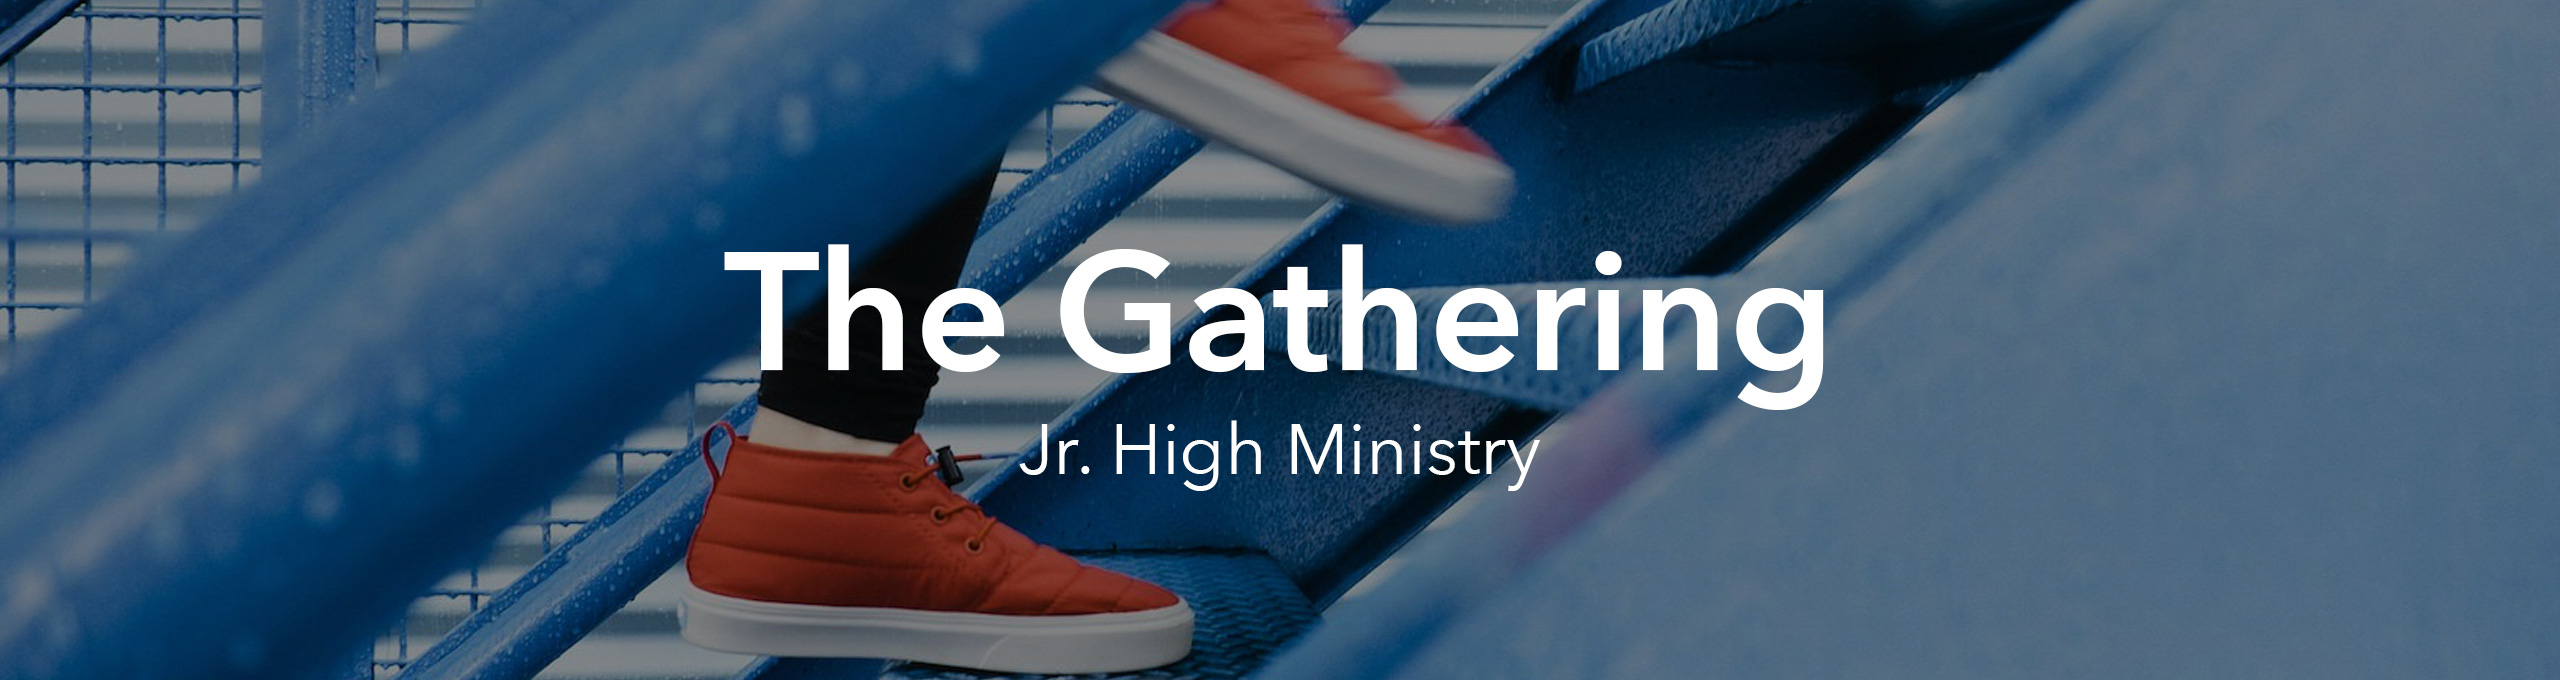 Jr. High School (The Gathering)